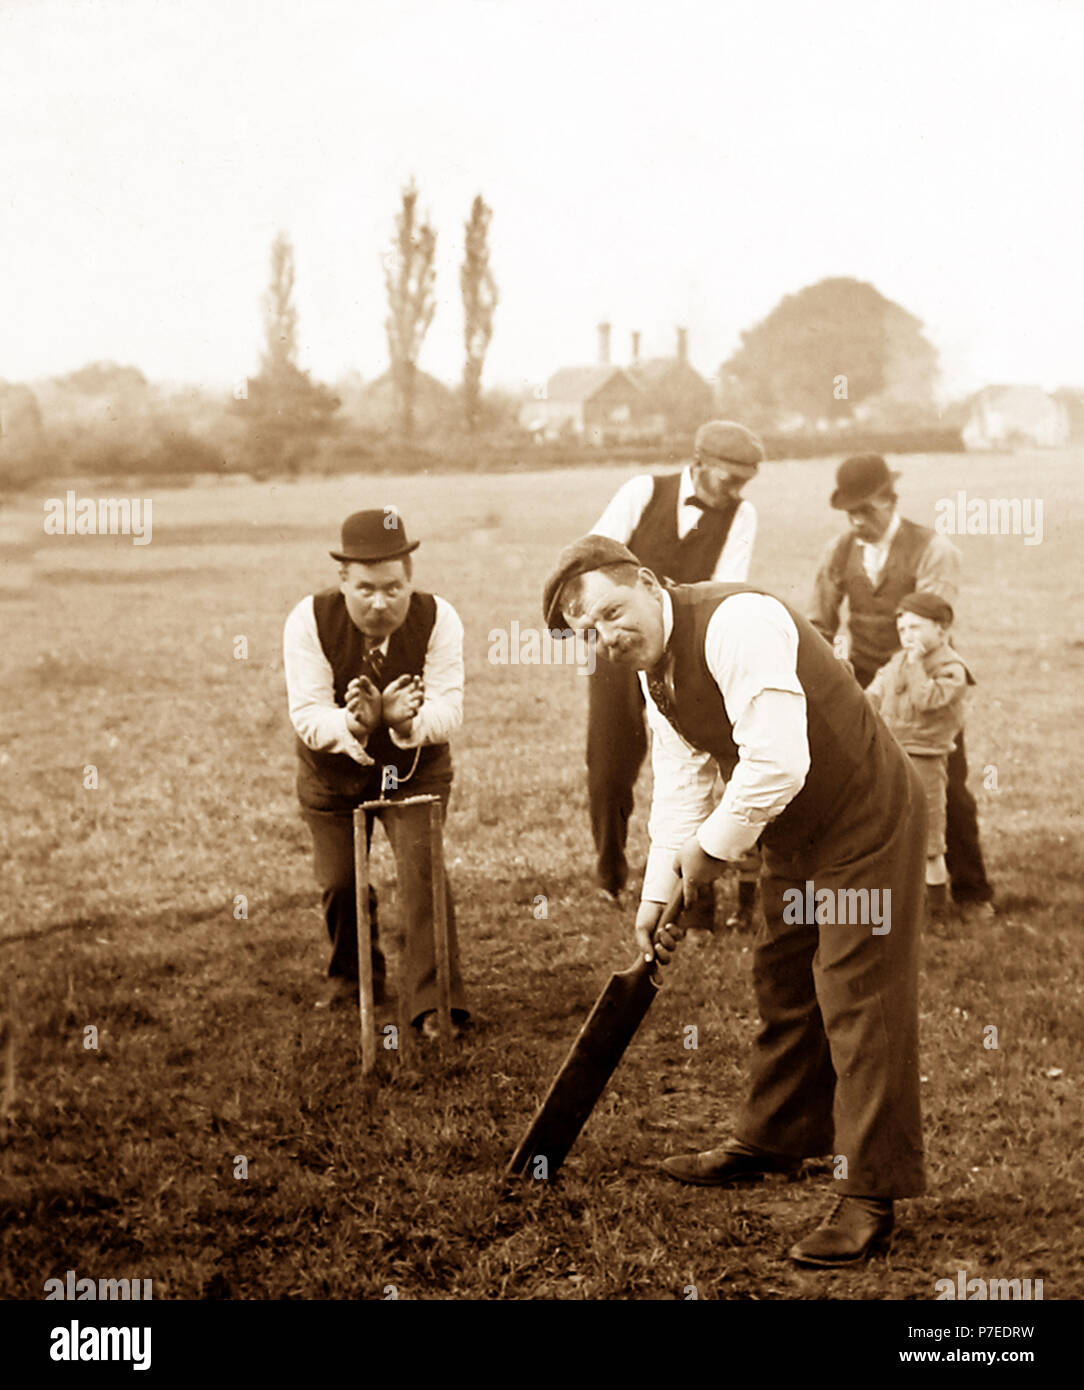 A village cricket match, early 1900s - Stock Image